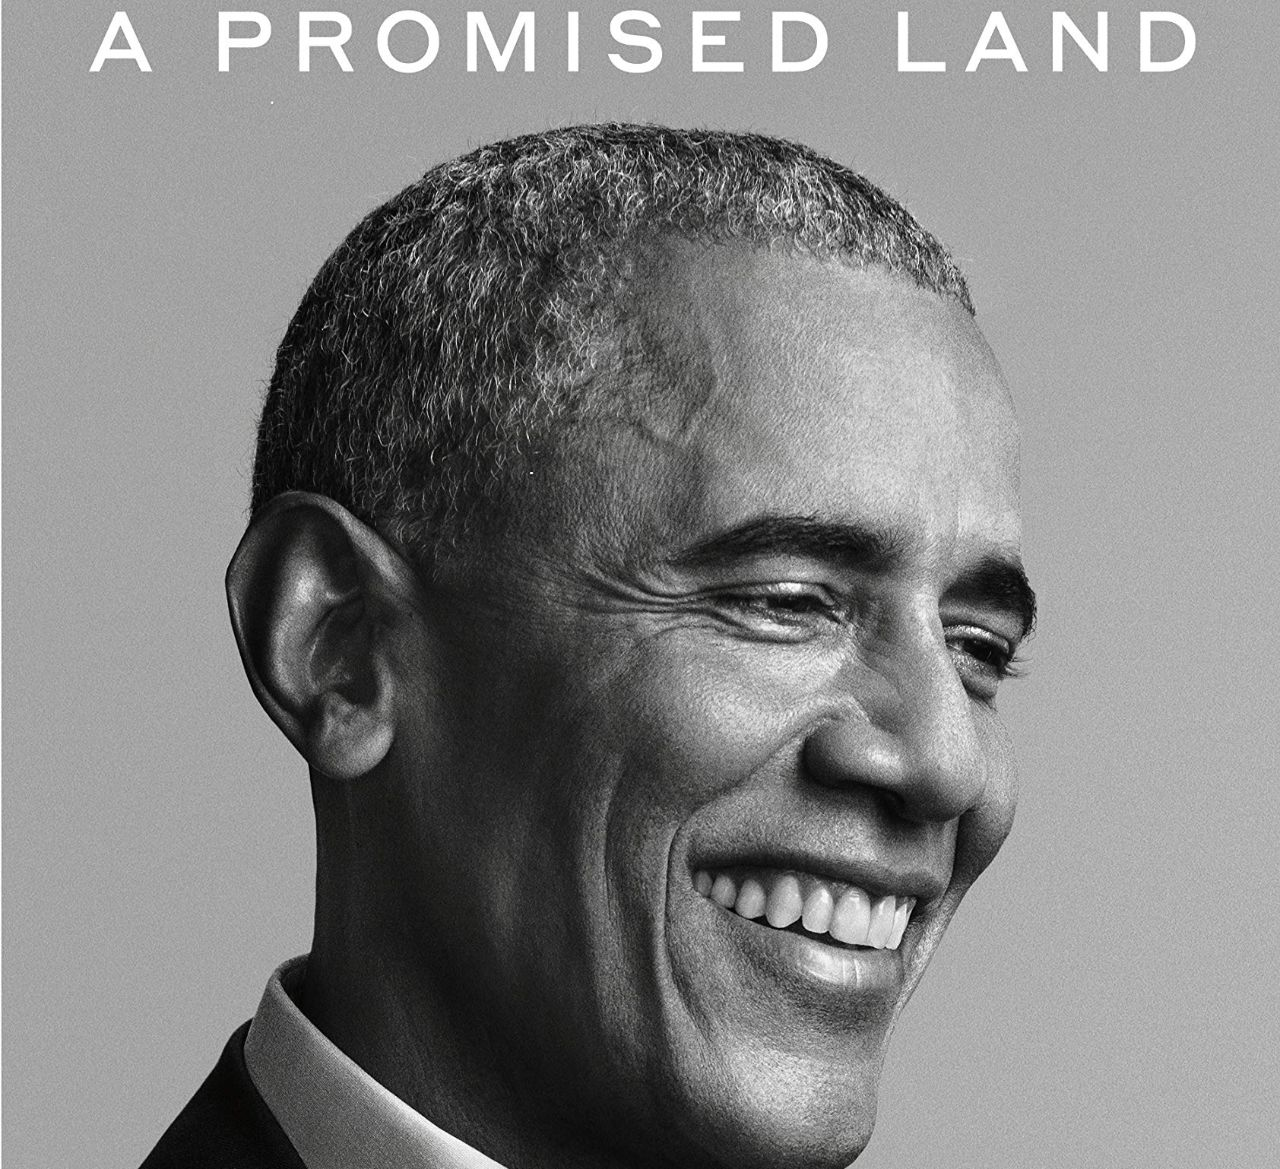 Barack Obama: A Promised Land